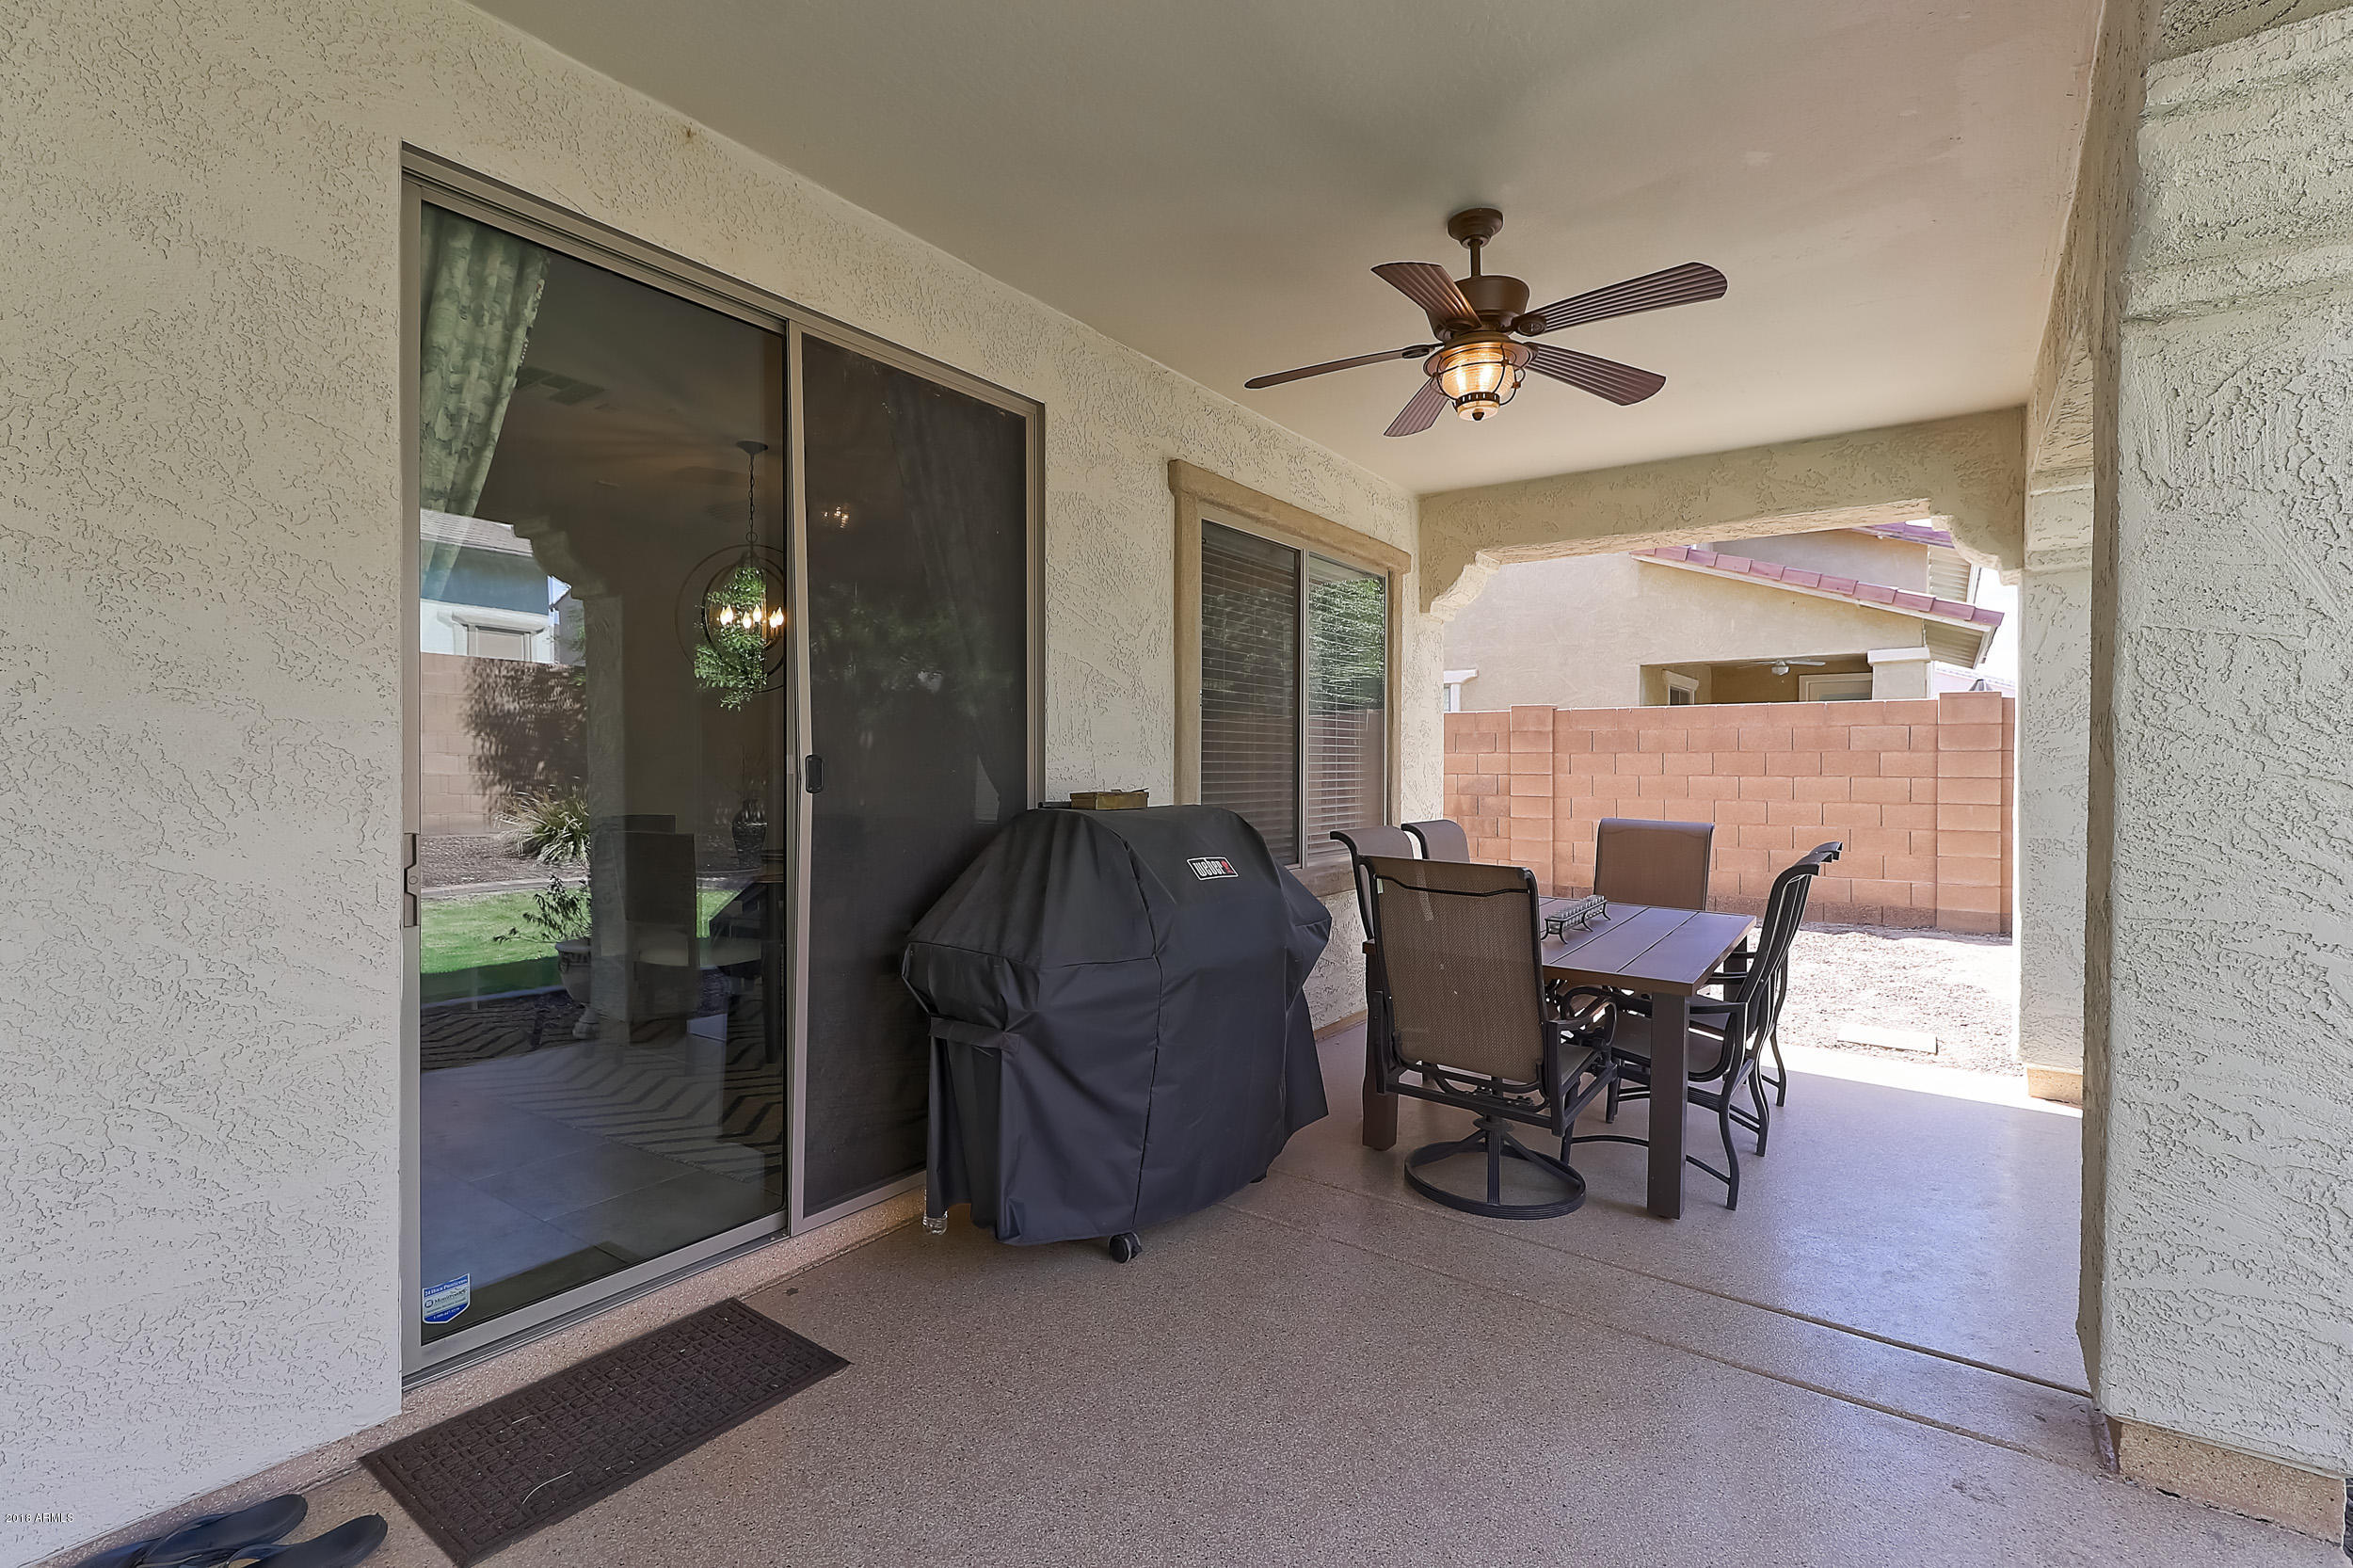 MLS 5816366 29681 N 69TH Lane, Peoria, AZ 85383 Peoria AZ Sonoran Mountain Ranch